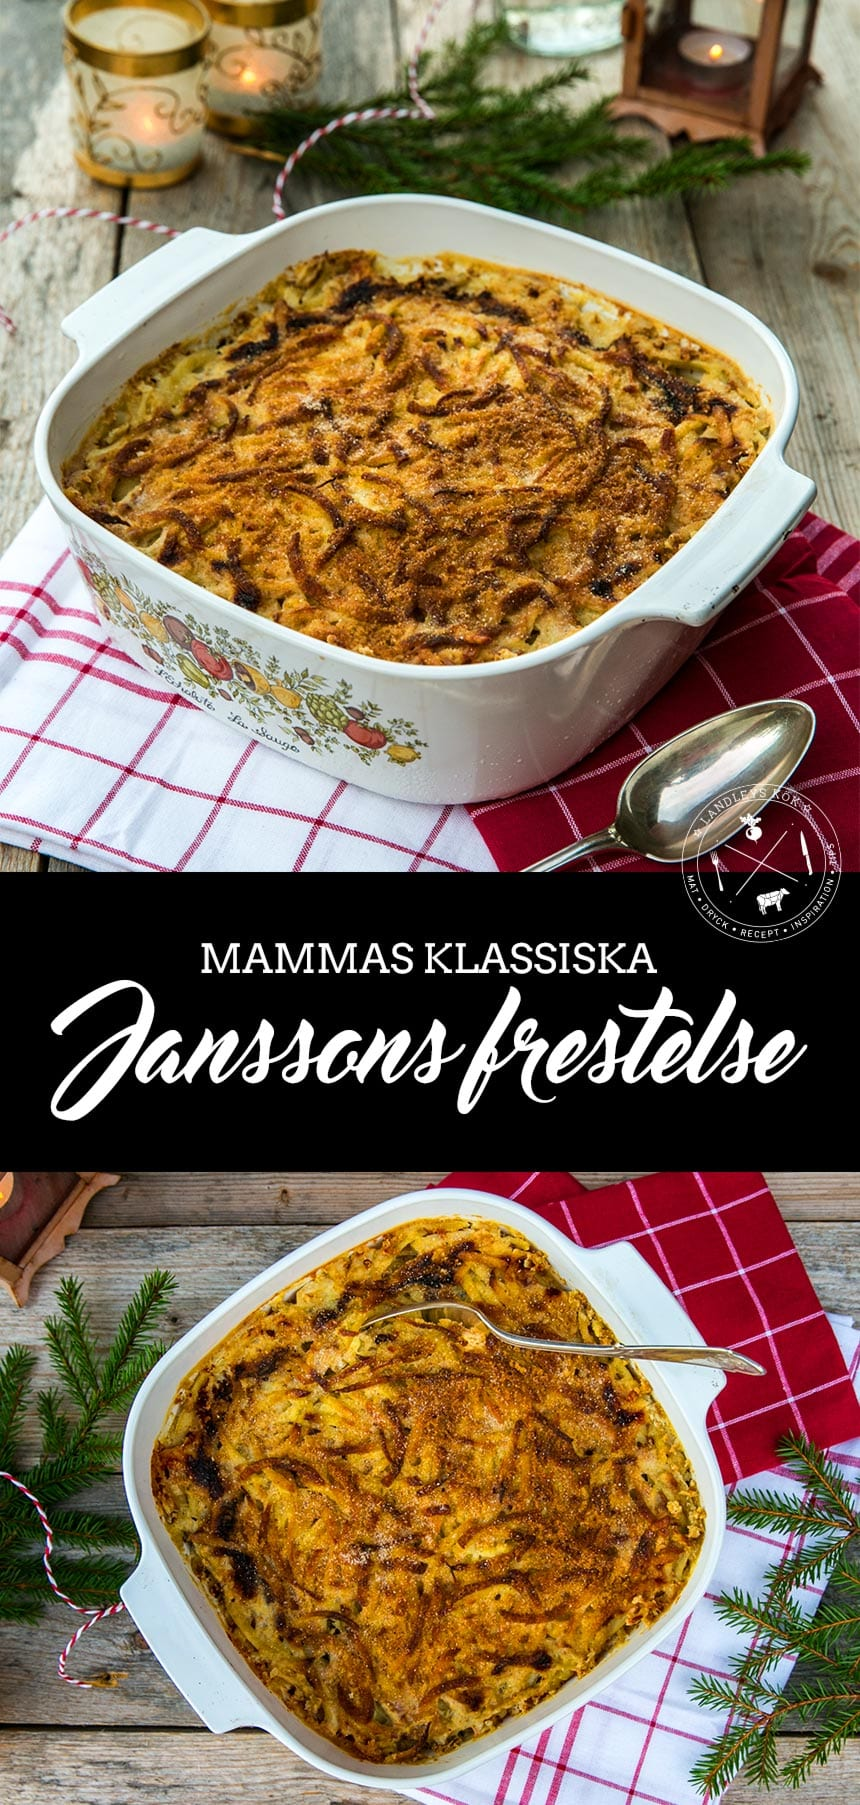 Recept på Klassisk Janssons Frestelse